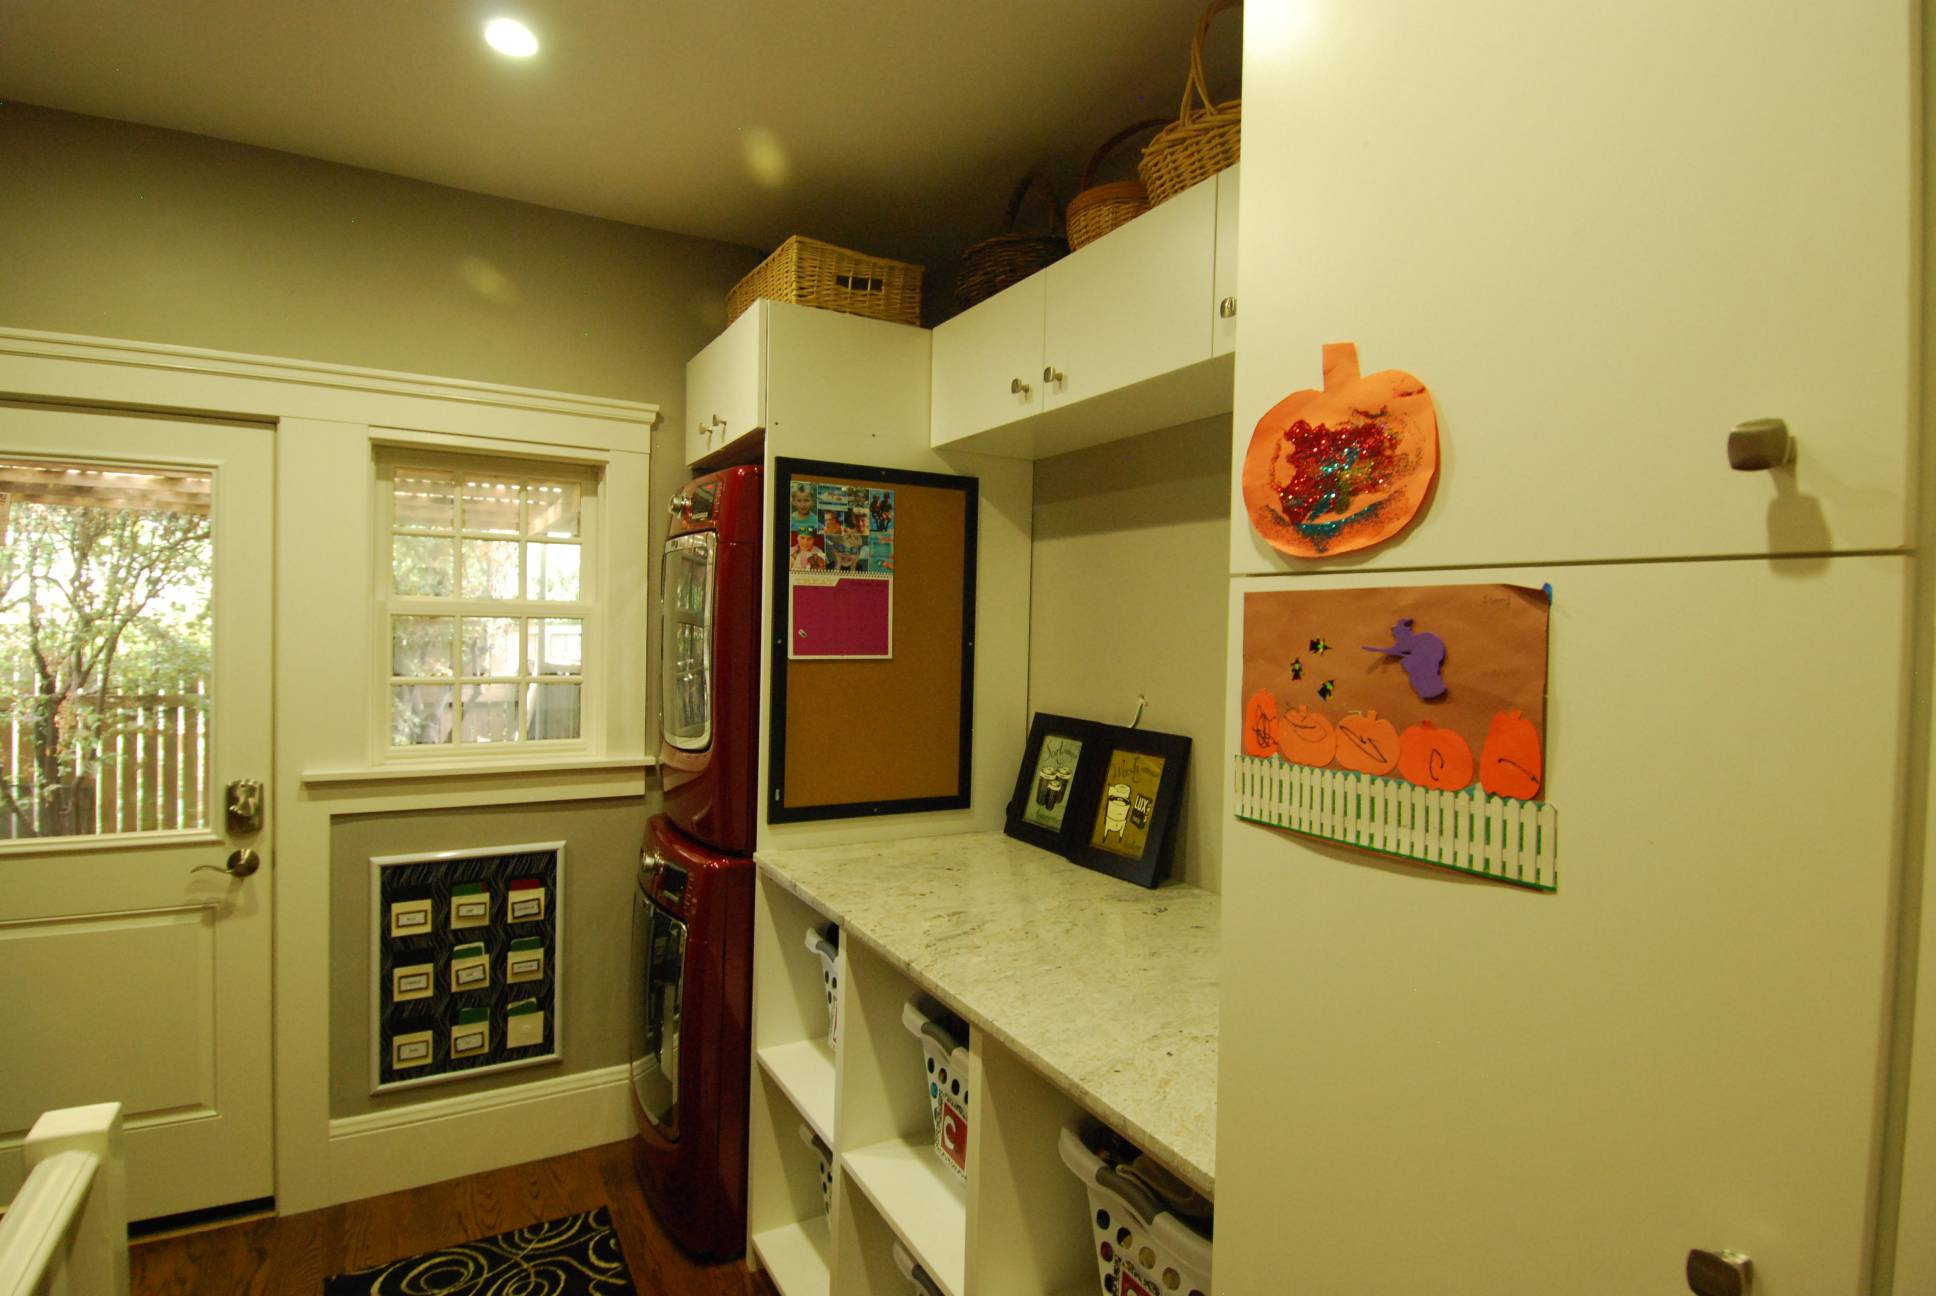 Laundry room, Architect work, Interior design work, Palo Alto